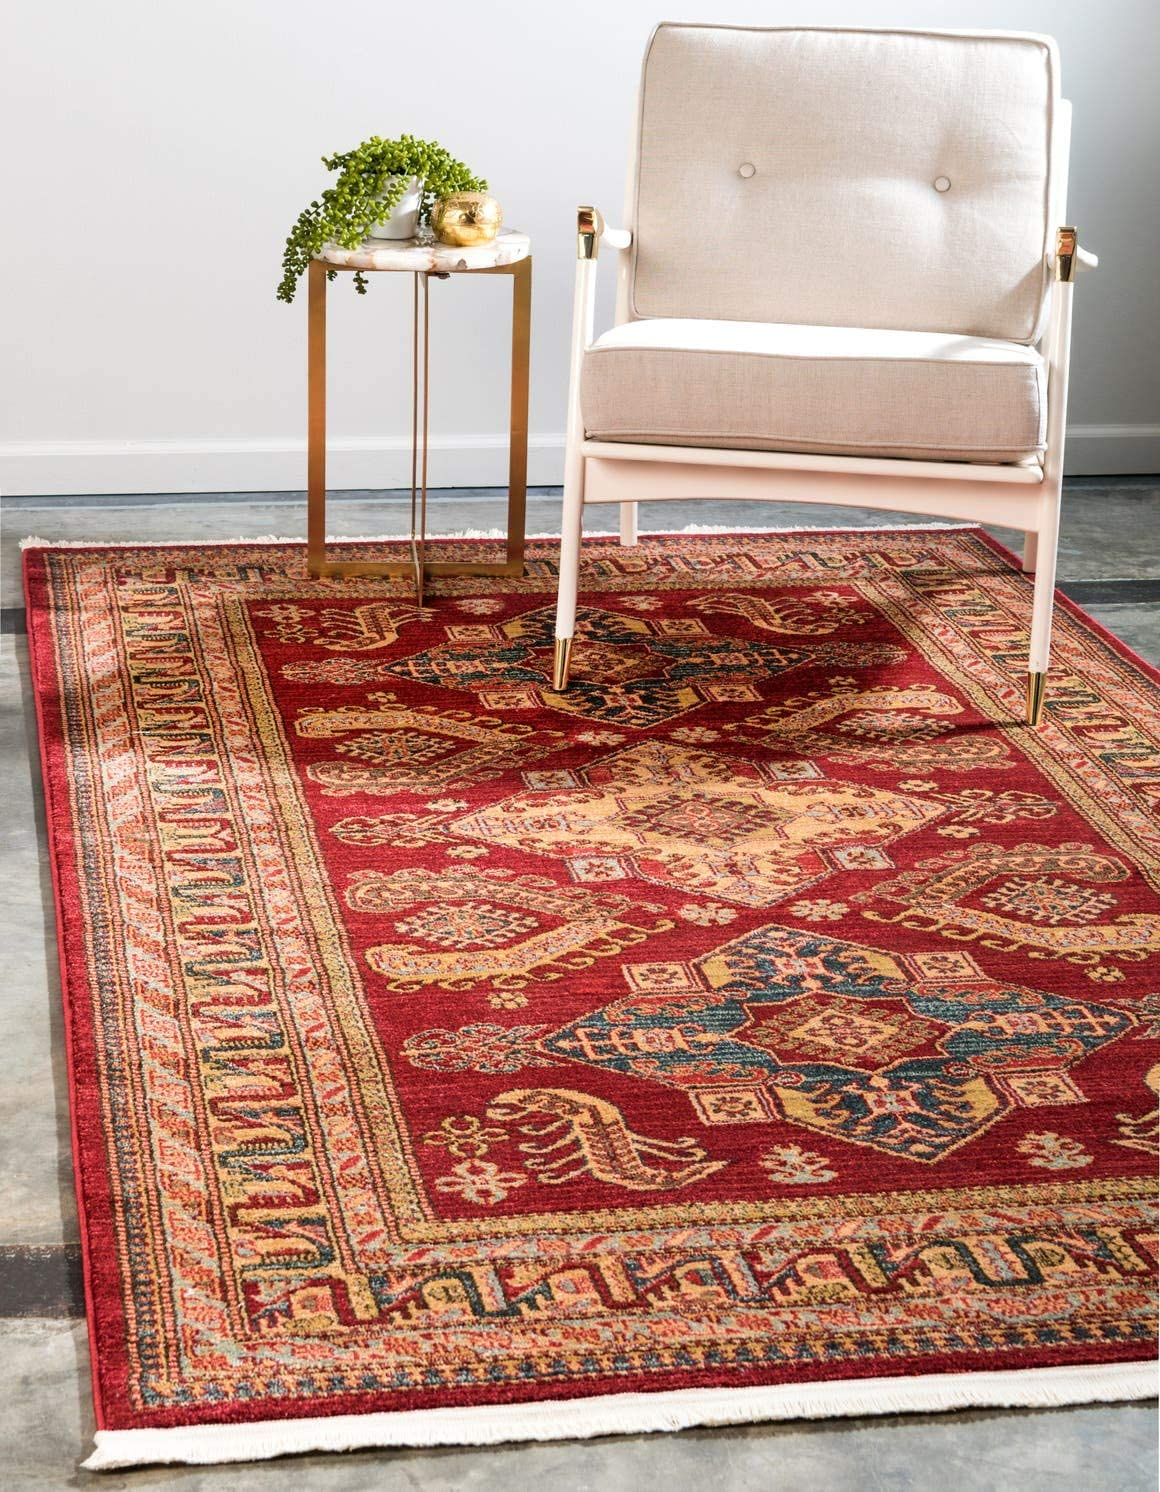 Unique Loom Sahand Collection Traditional Geometric Classic Red Area Rug 9 0 x 12 0